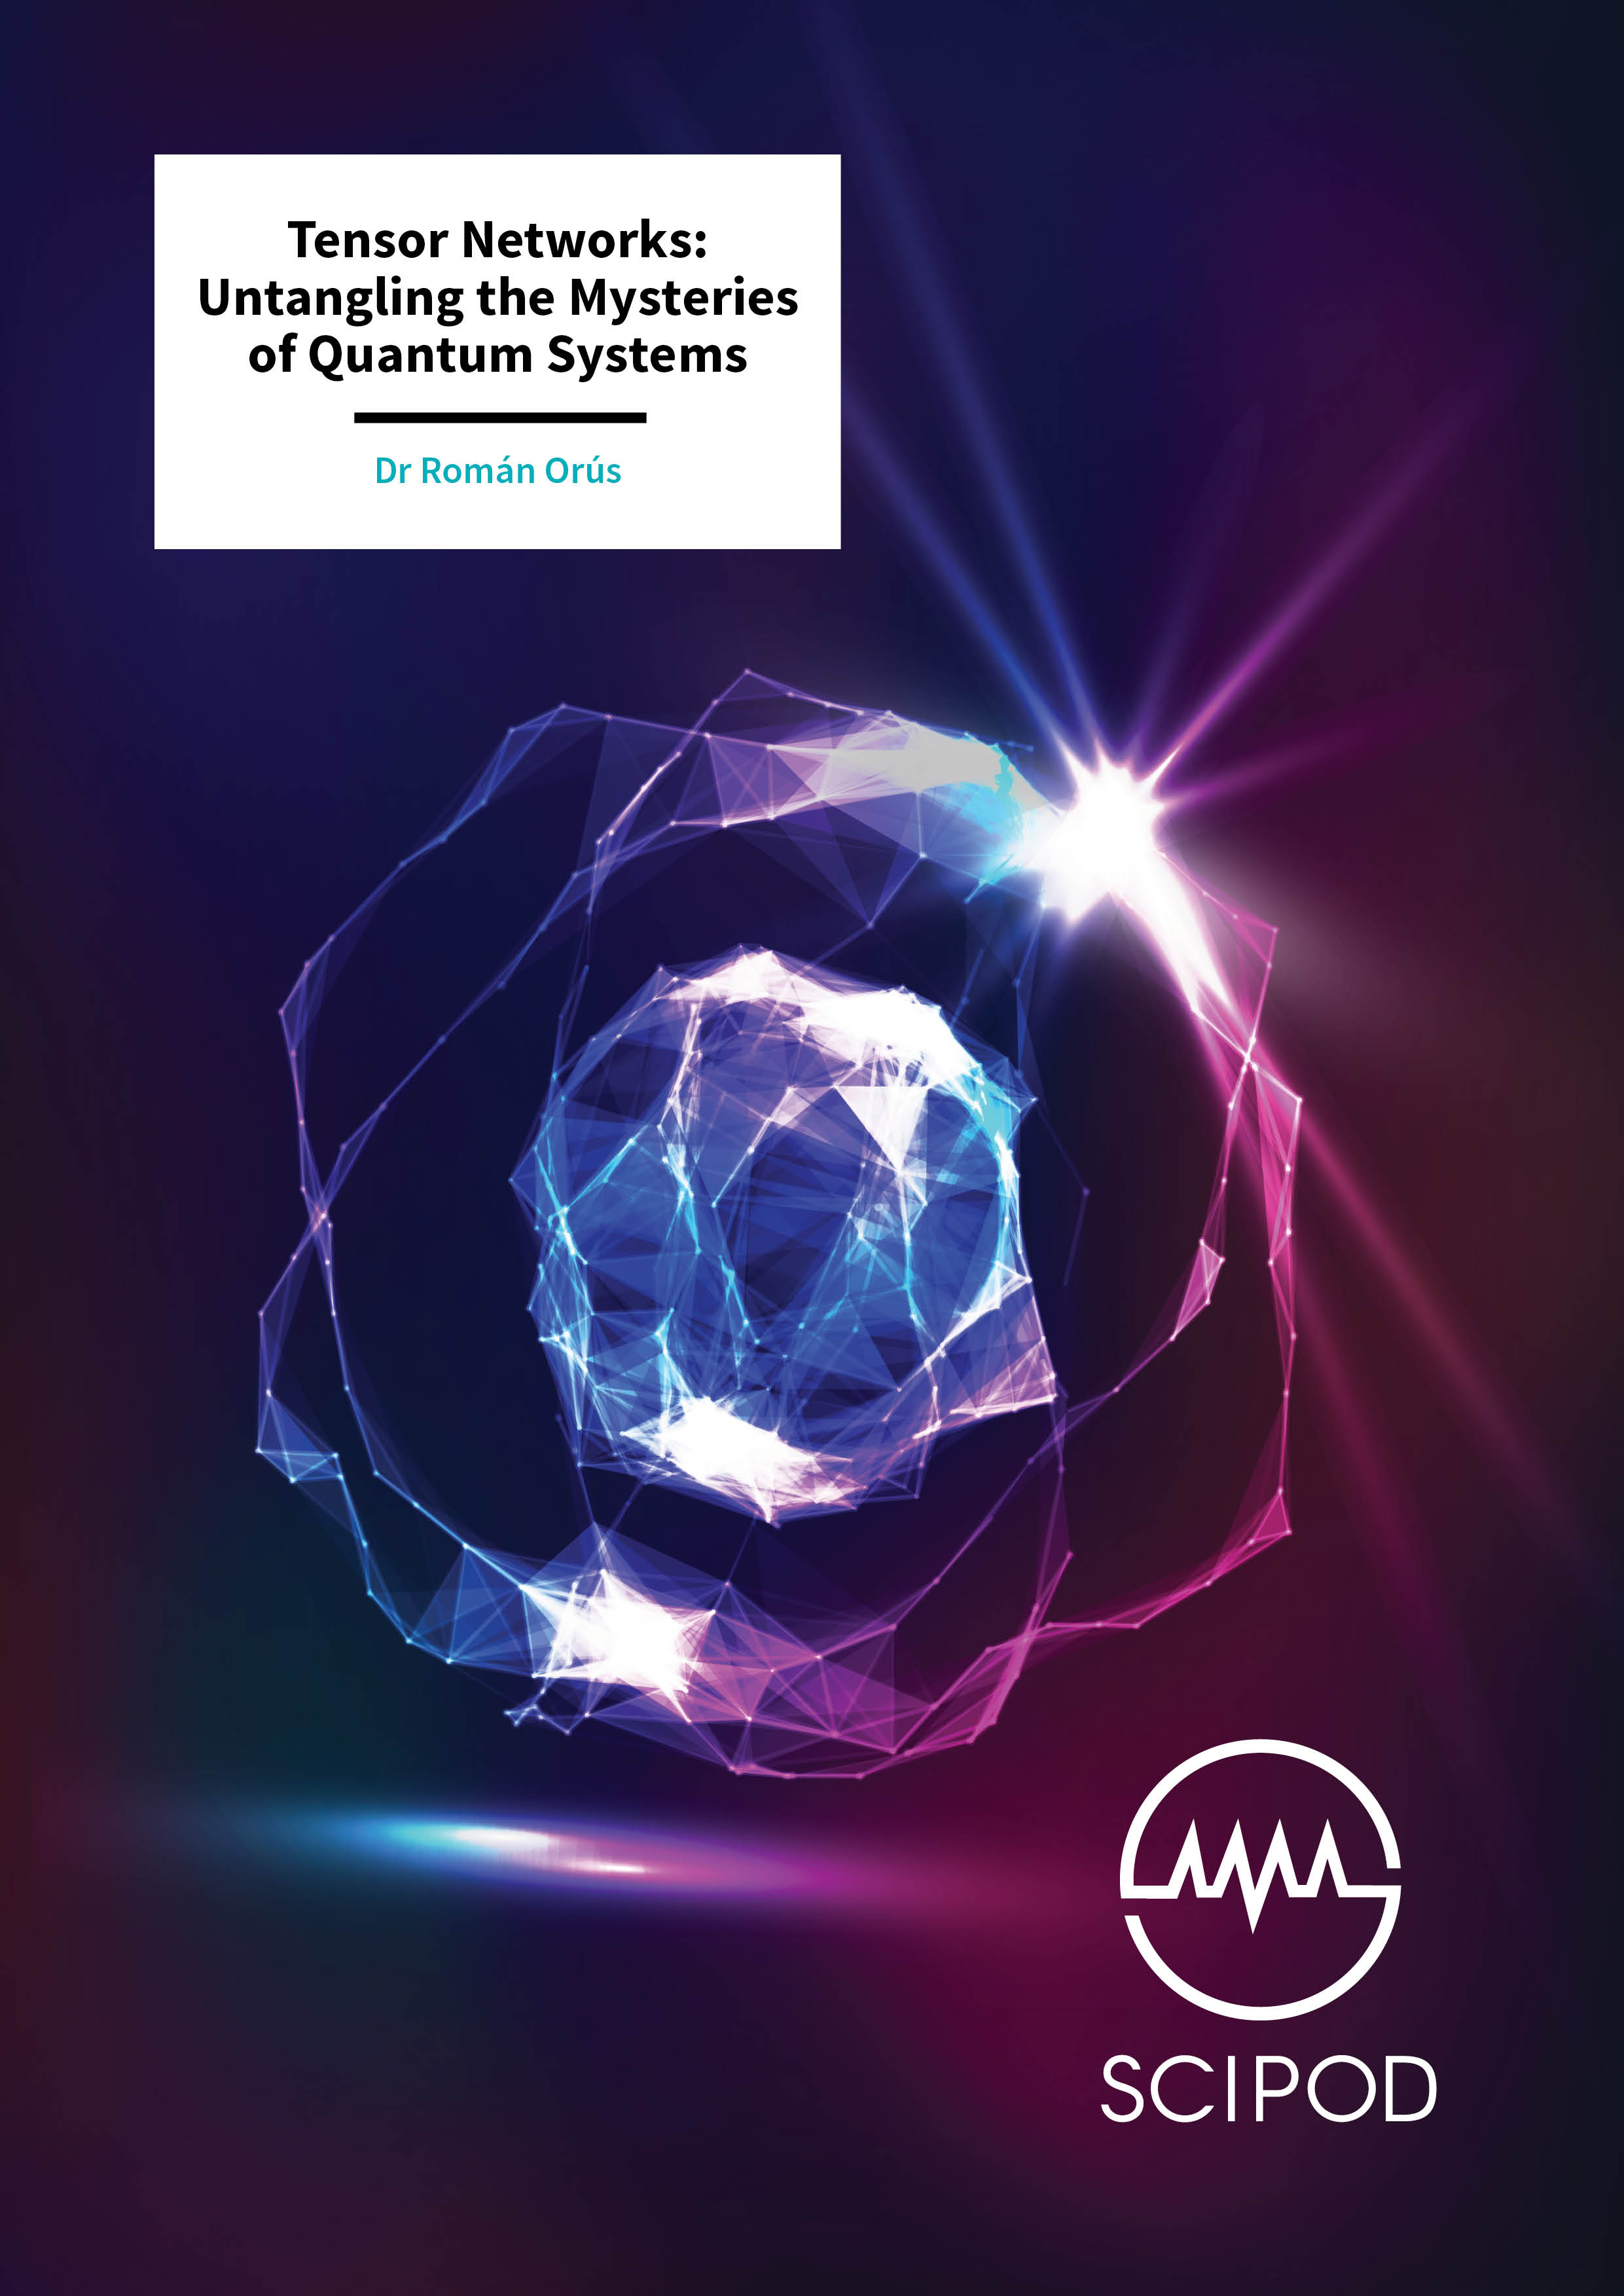 Tensor Networks Untangling the Mysteries of Quantum Systems – Dr Román Orús, Johannes Guttenberg Universität